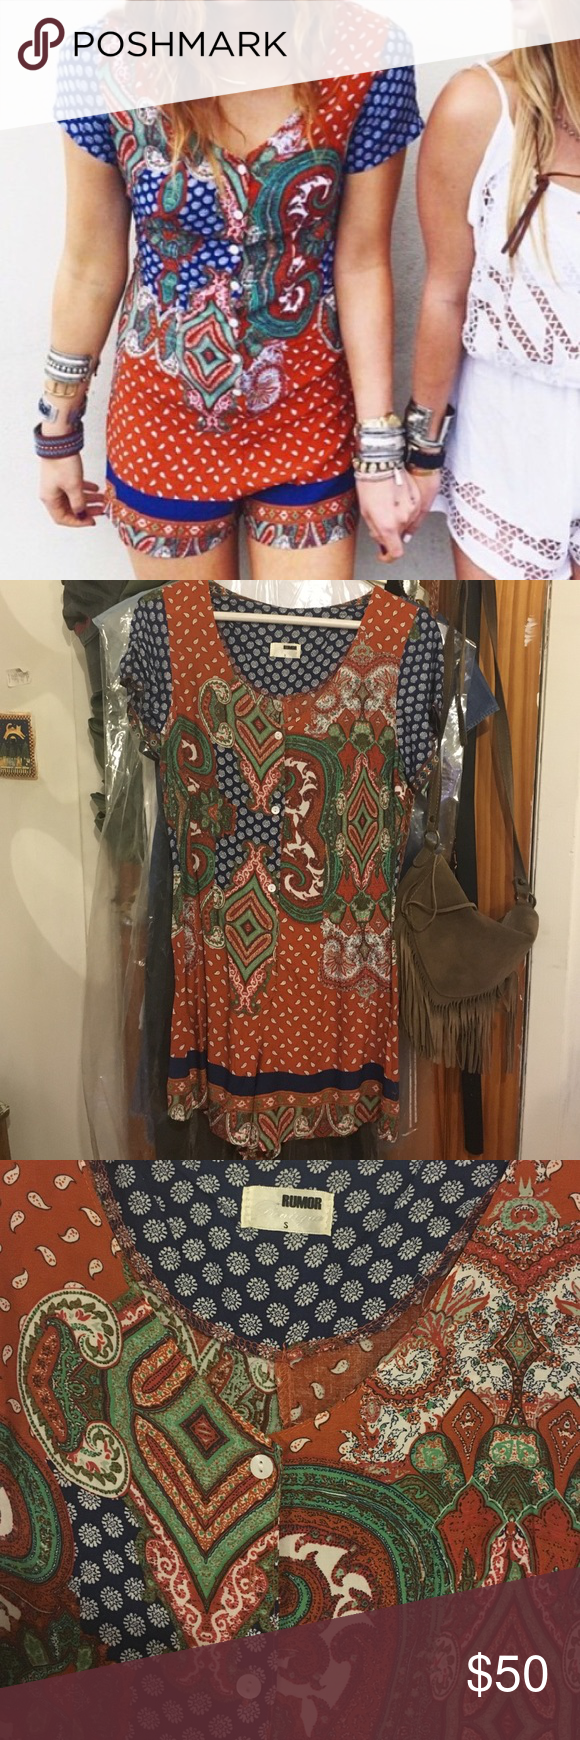 LF Paisley Romper Never worn button front paisley jumpsuit bought from LF LF Pants Jumpsuits & Rompers